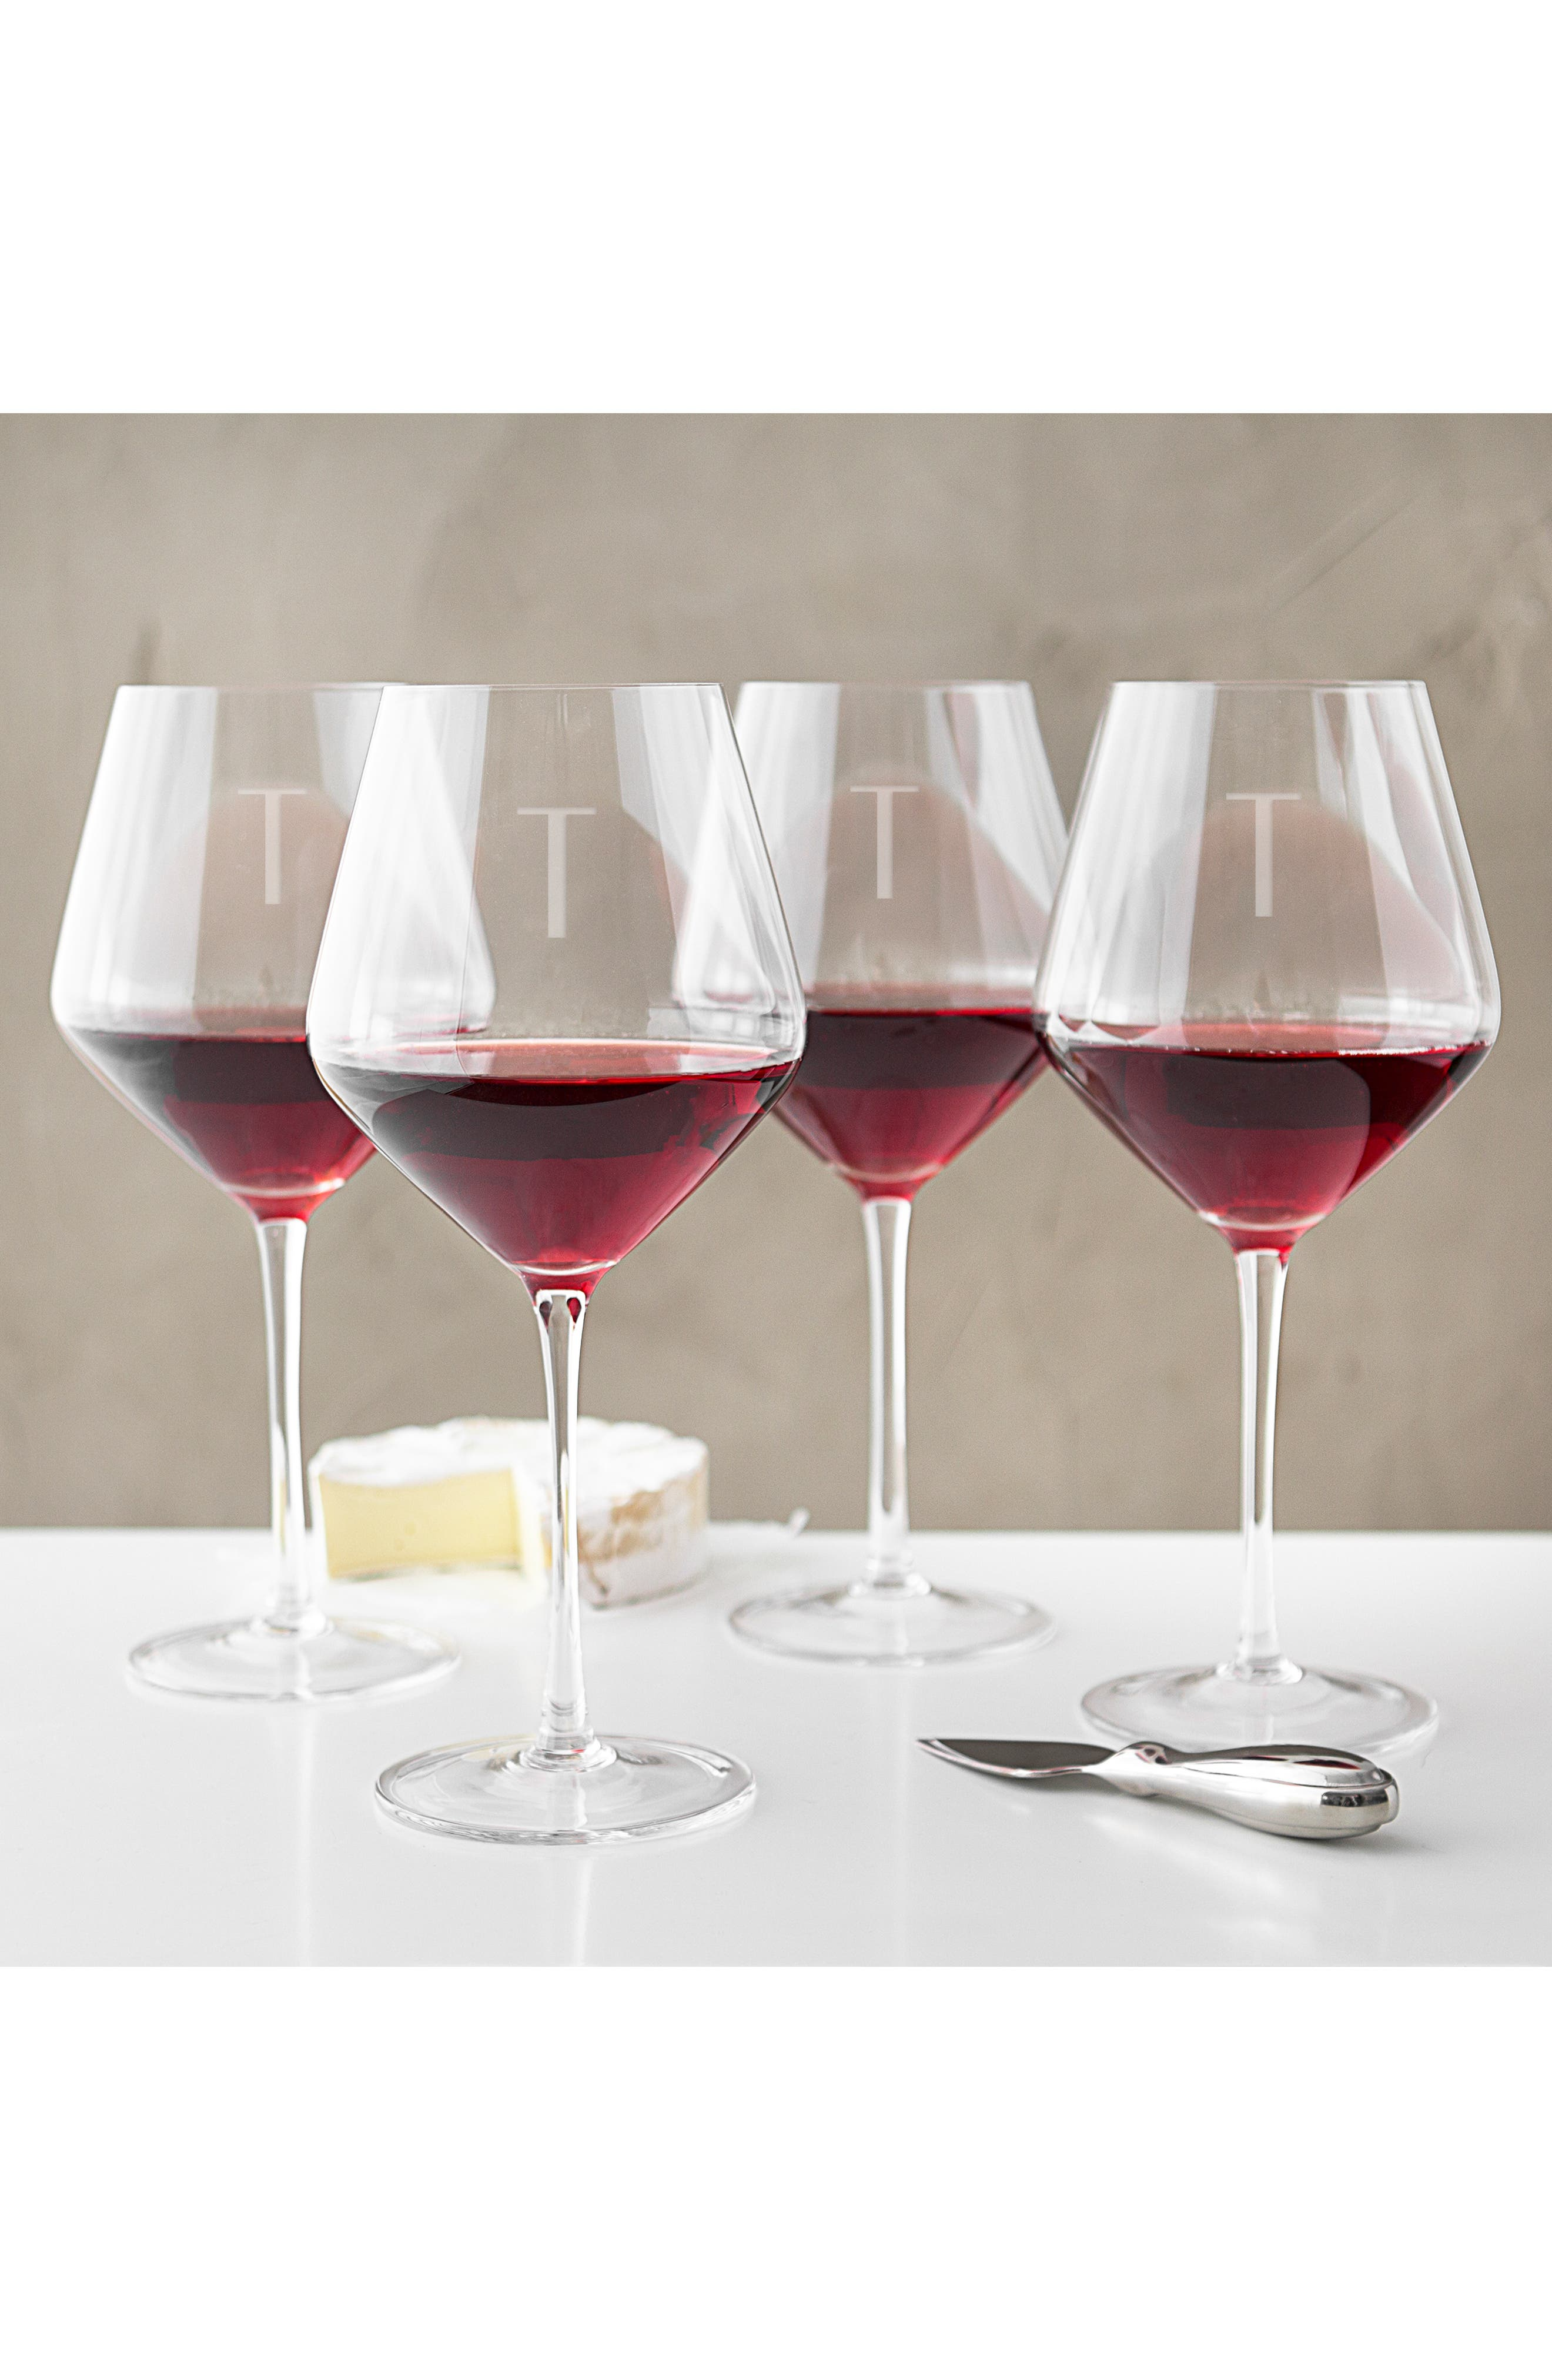 Estate Collection Set of 4 Monogram Red Wine Glasses,                             Alternate thumbnail 3, color,                             BLANK